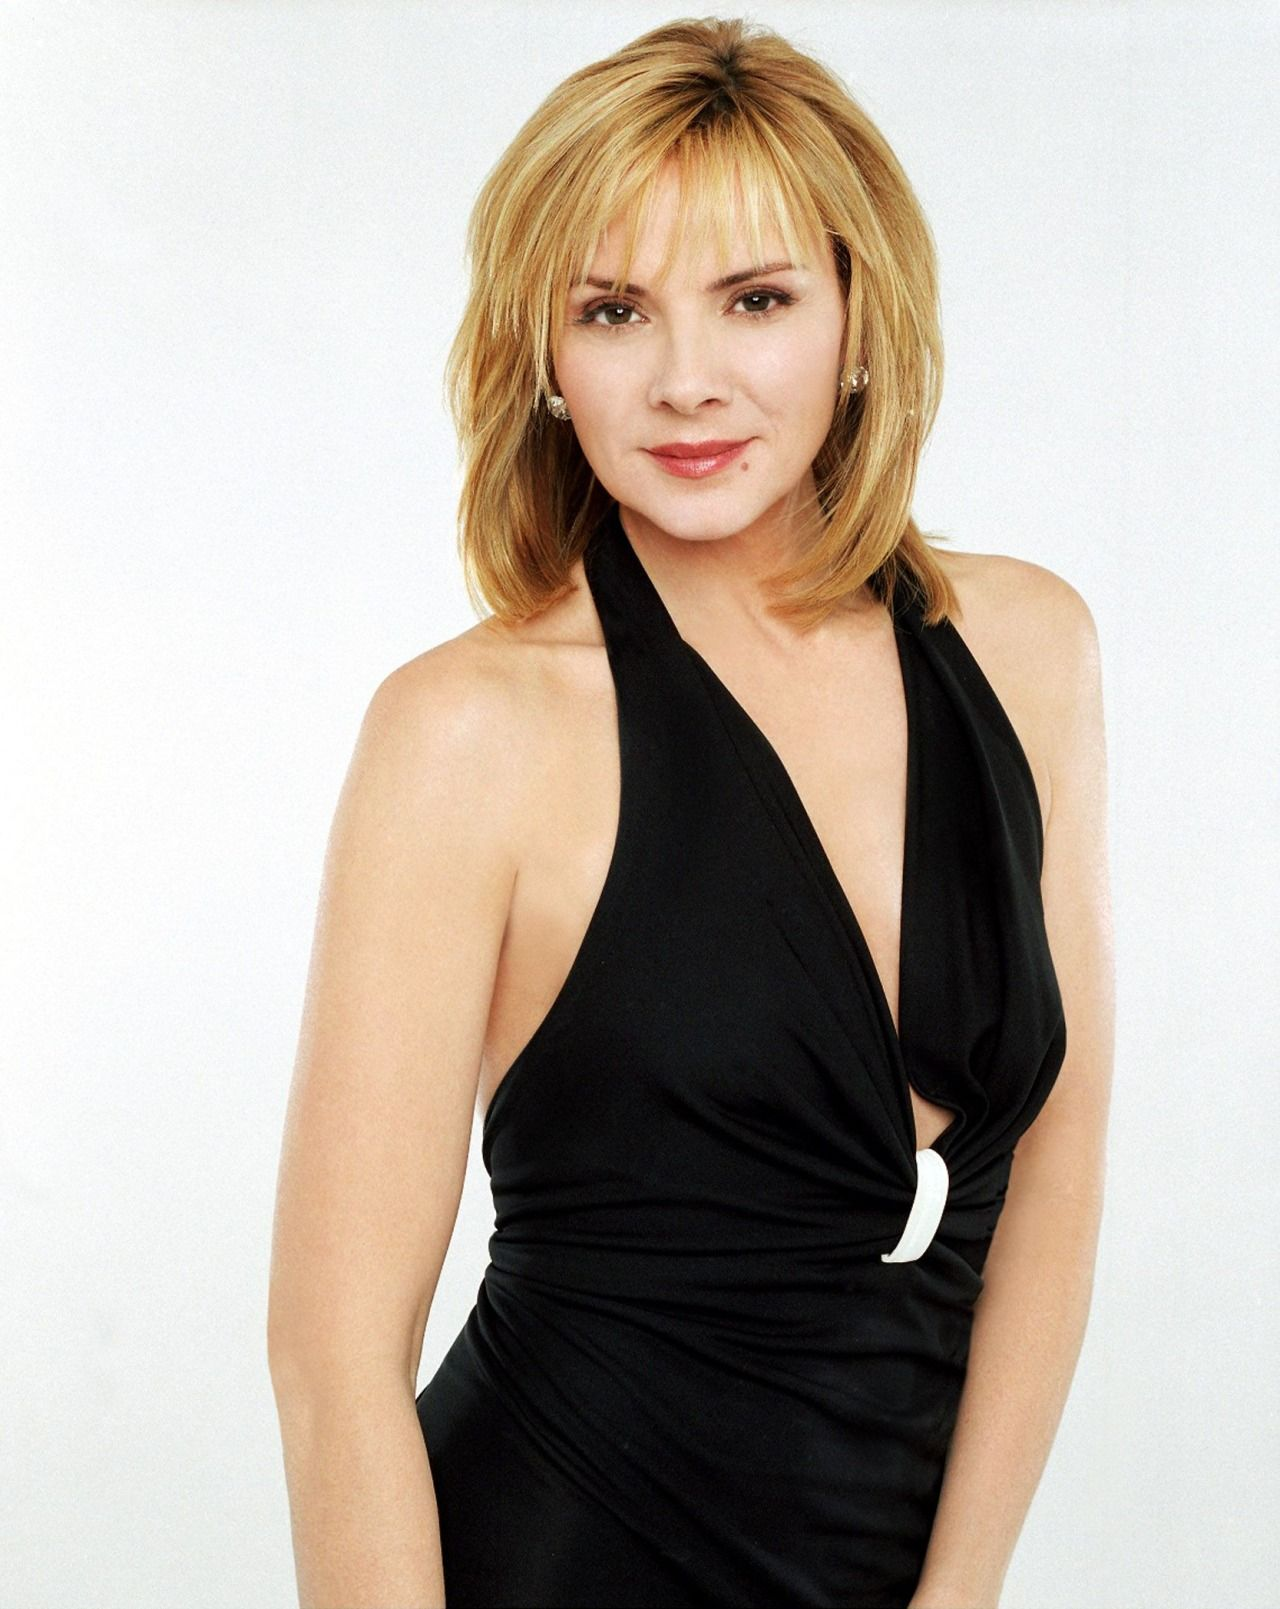 Kim Cattrall as Samantha Jones (Sex and the City)